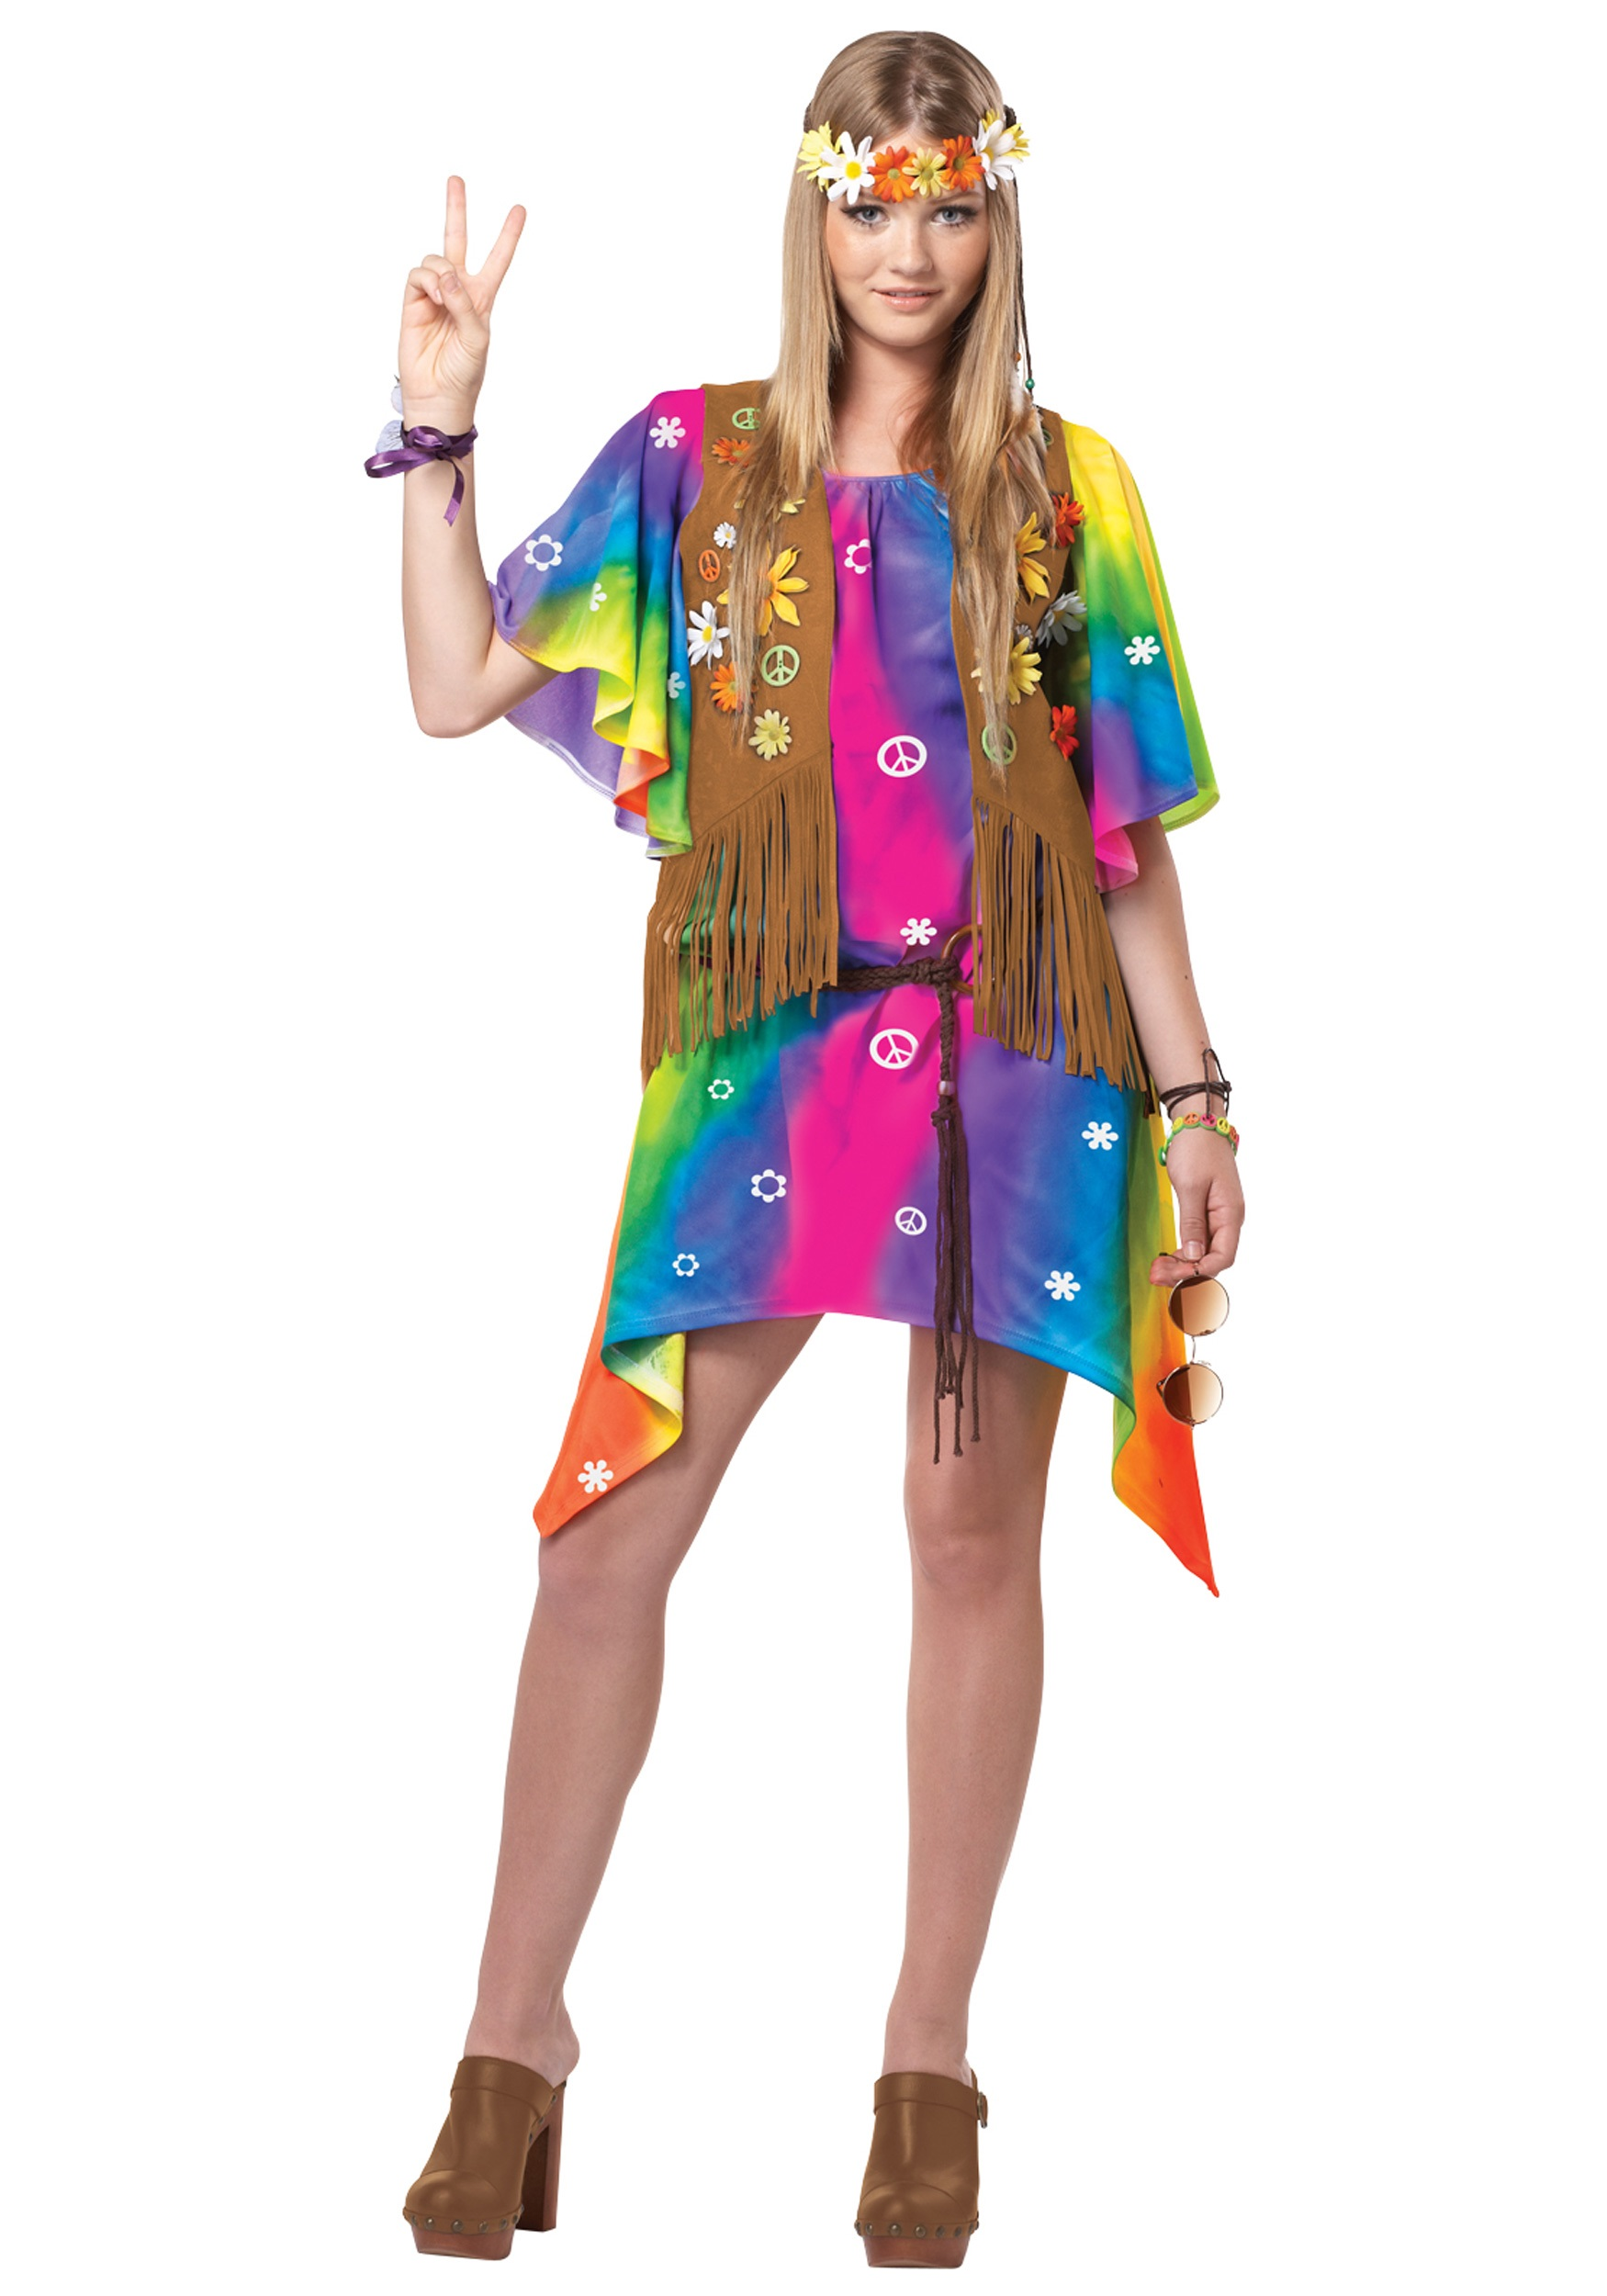 Teen Groovy Girl Hippie Costume  sc 1 st  Halloween Costumes & Teen Groovy Girl Hippie Costume - Halloween Costume Ideas 2018